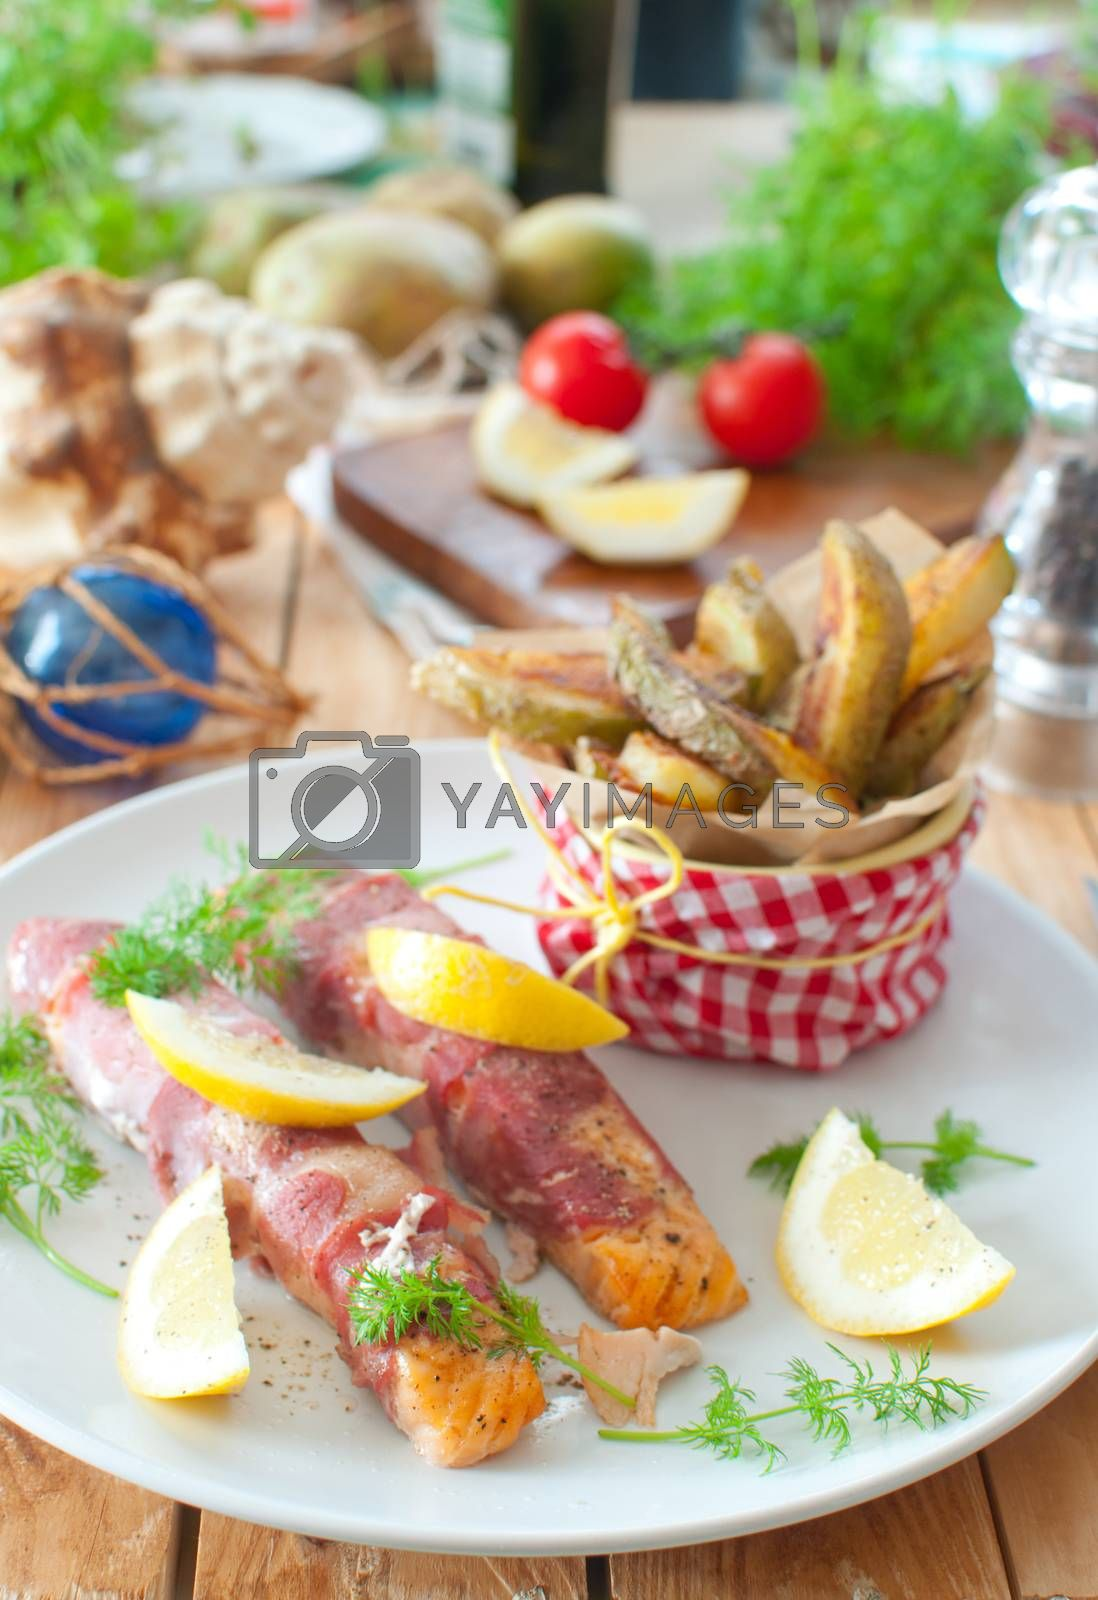 Royalty free image of Seafood meal by unikpix